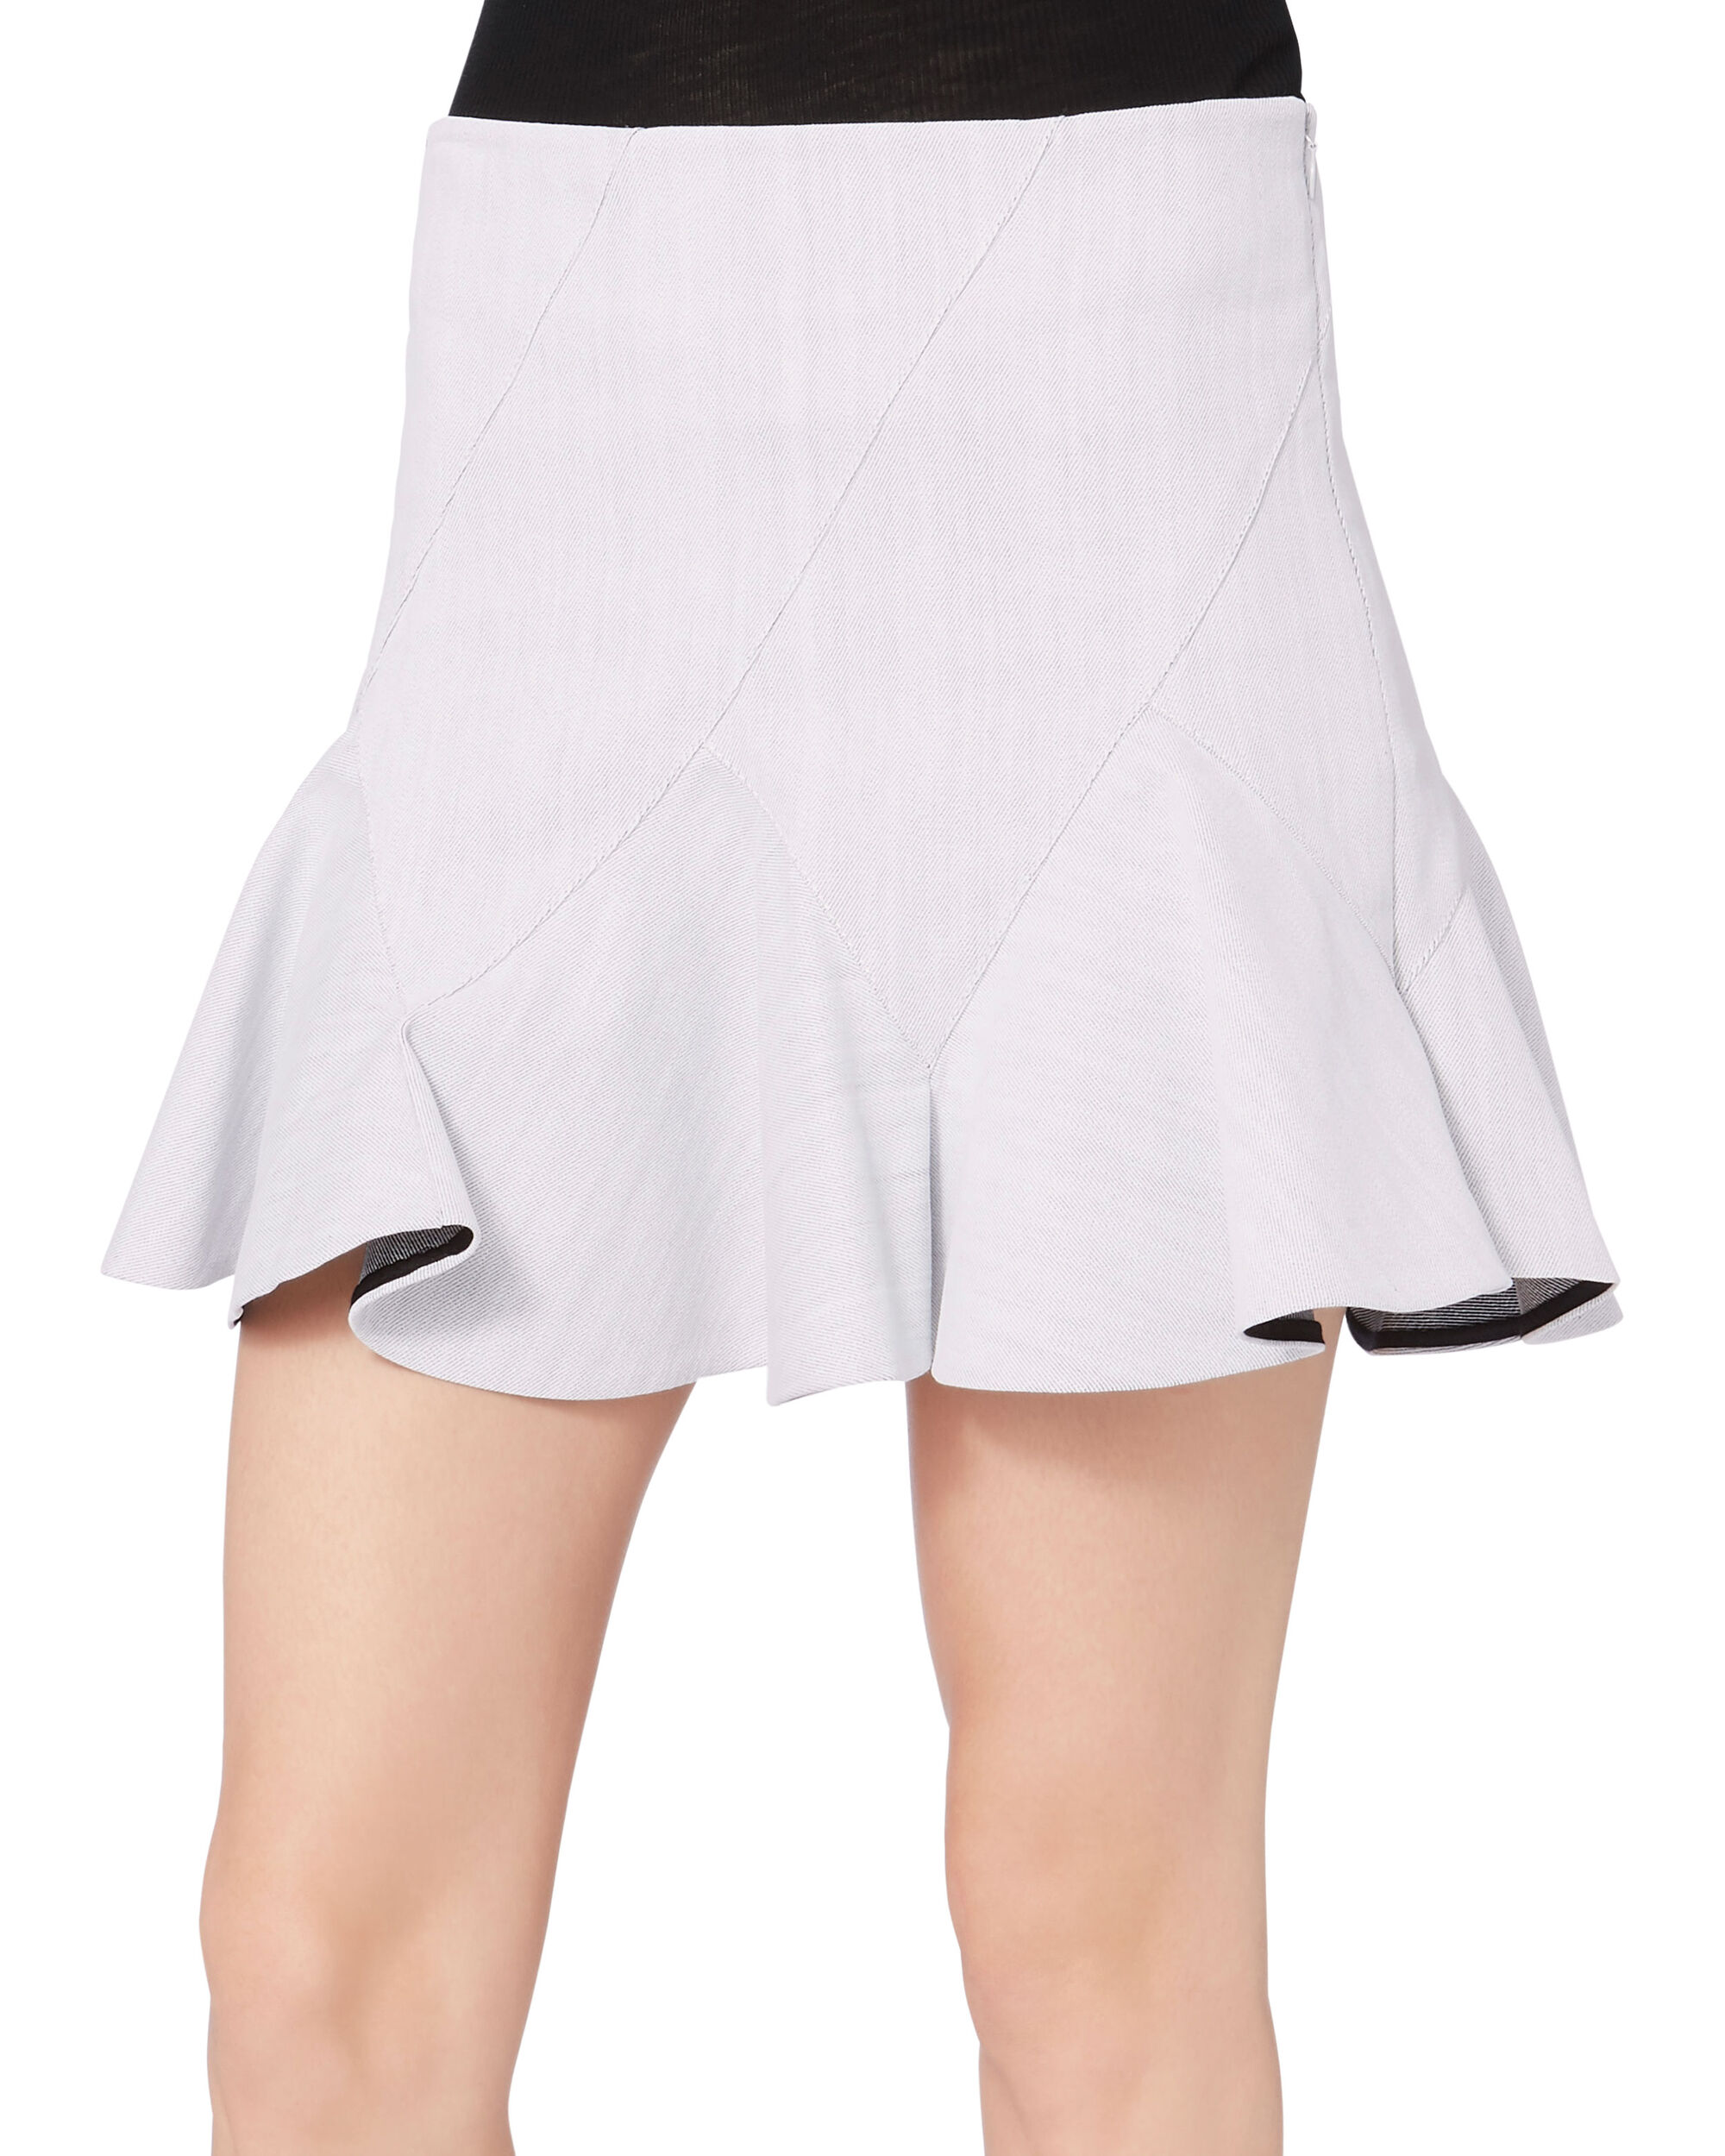 Godet Mini Skirt, GREY, hi-res